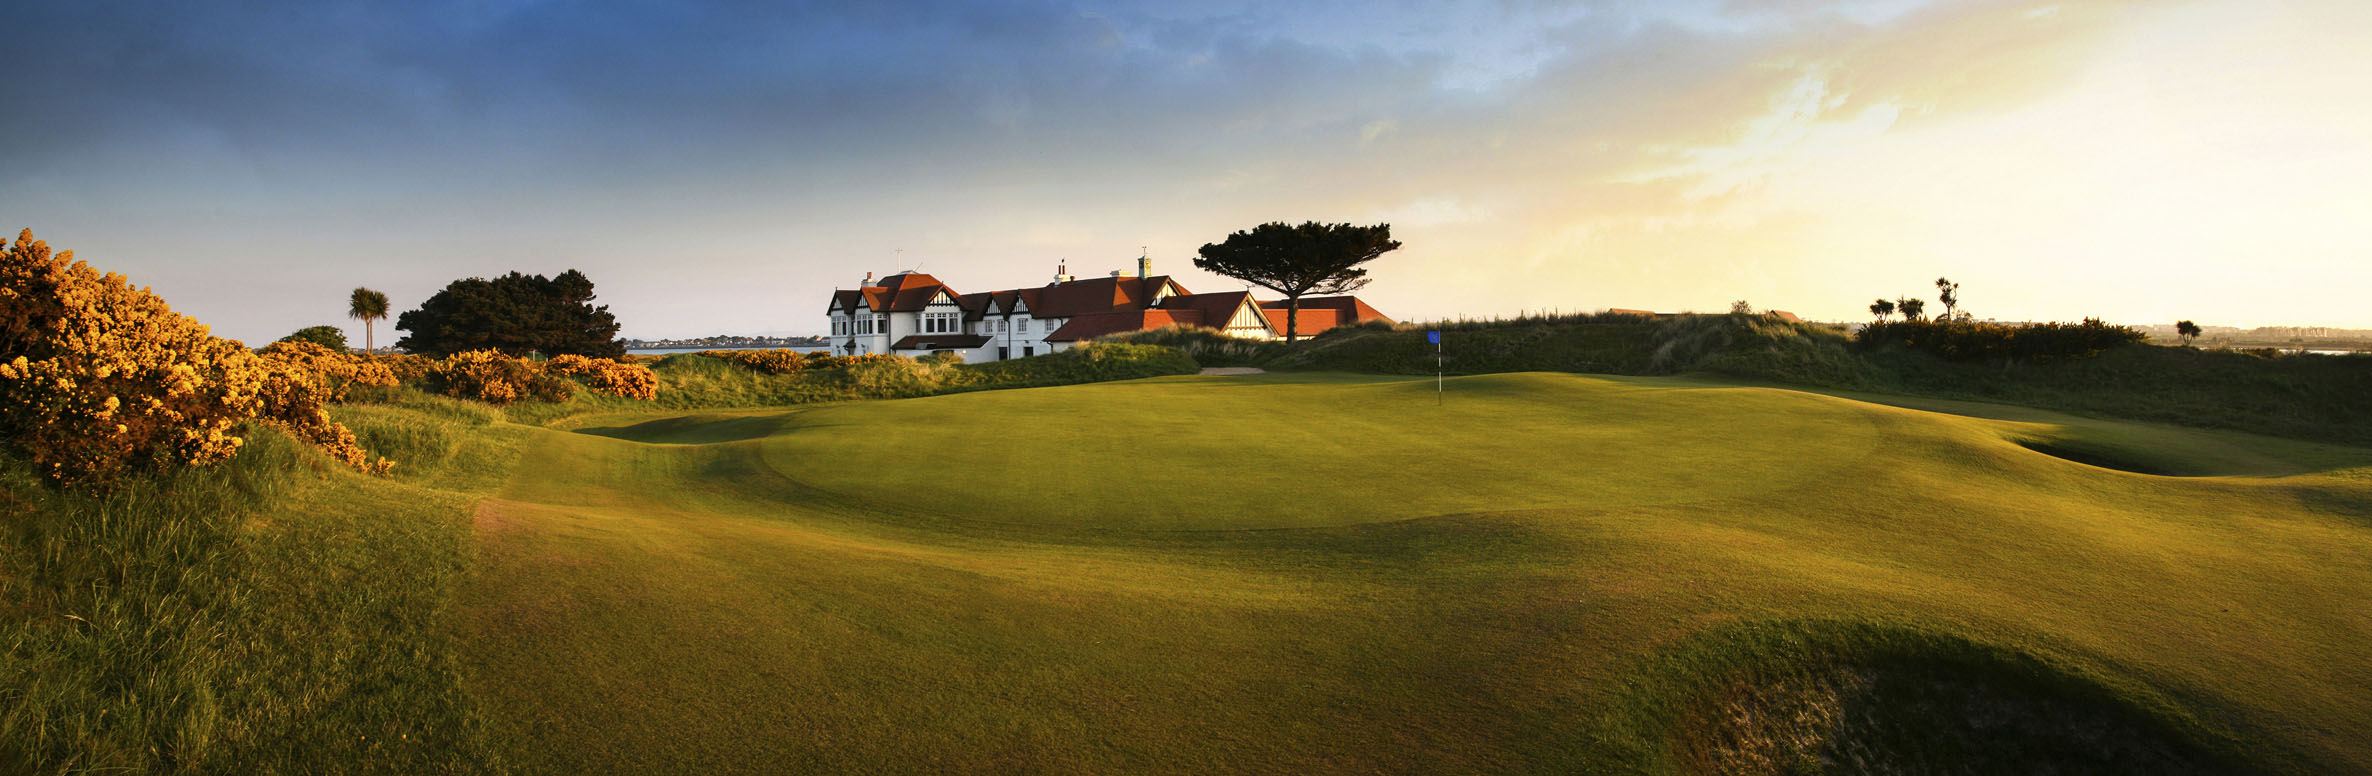 Golf Course Image - Portmarnock Golf Links No. 18